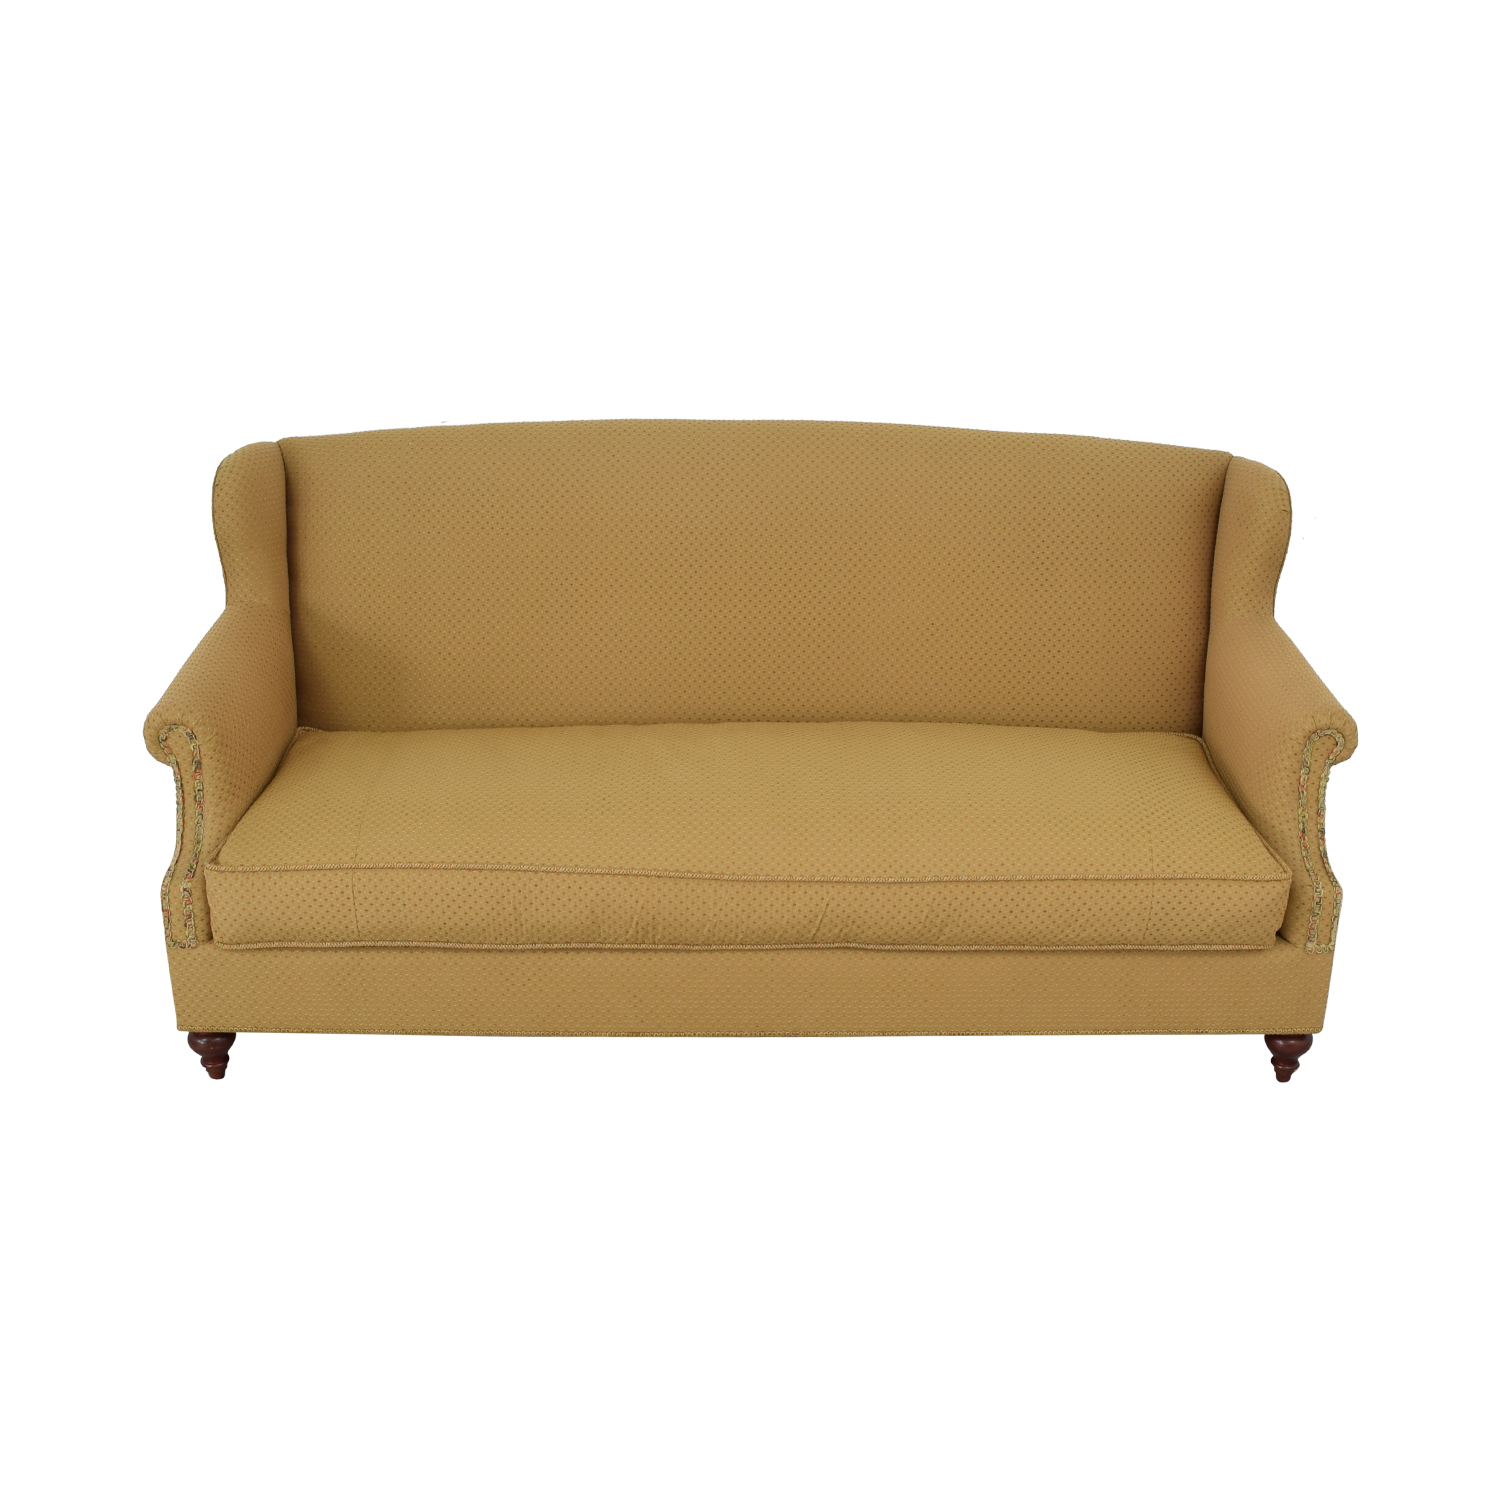 Domain Home Victorian Style Ember Sofa / Sofas